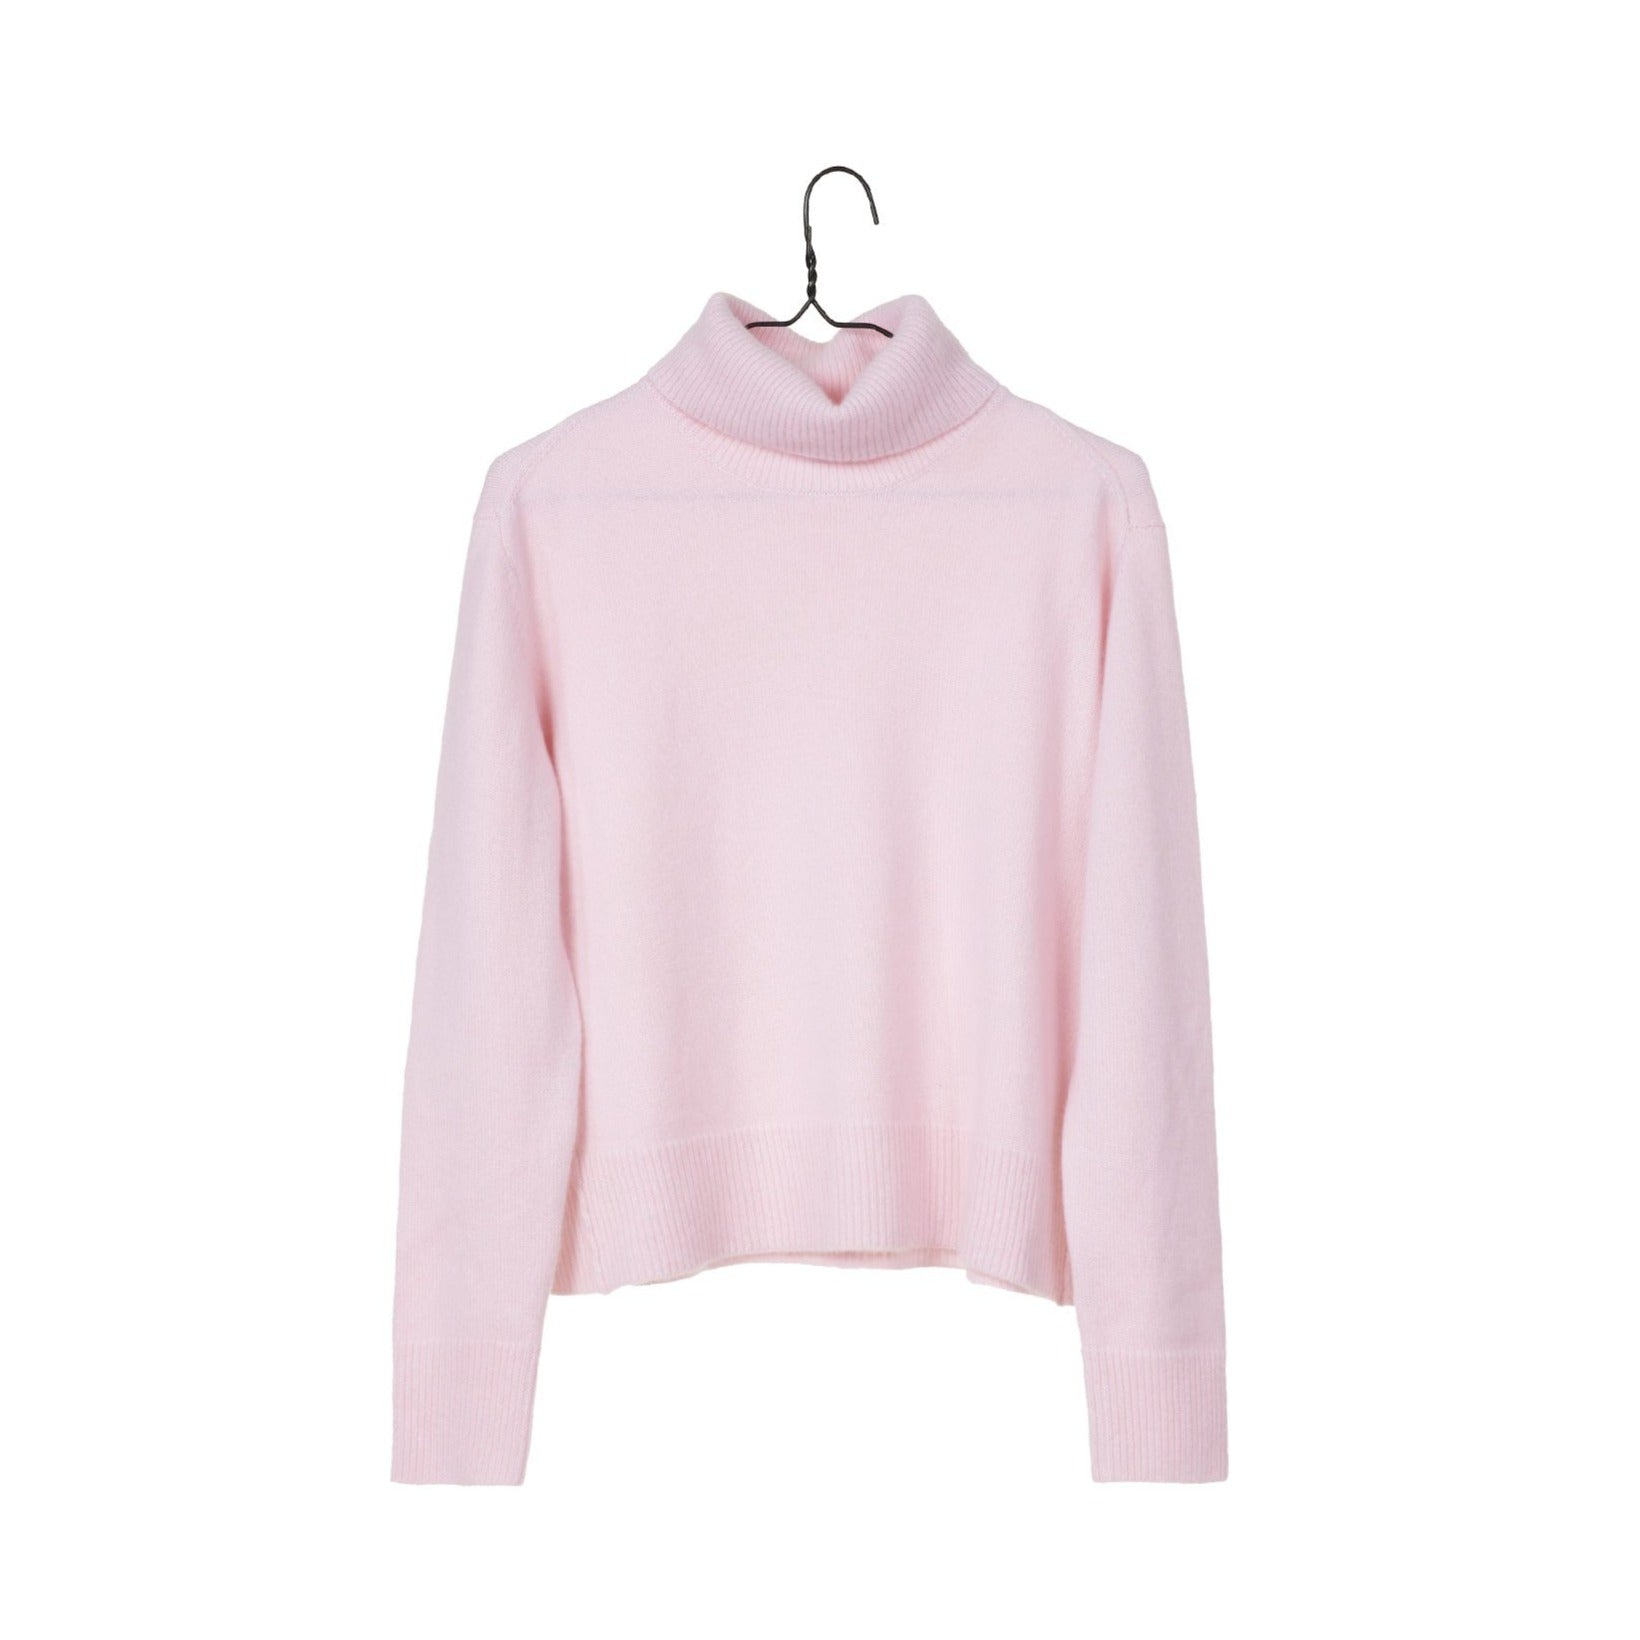 Knit Turtleneck Sweater - Piggy